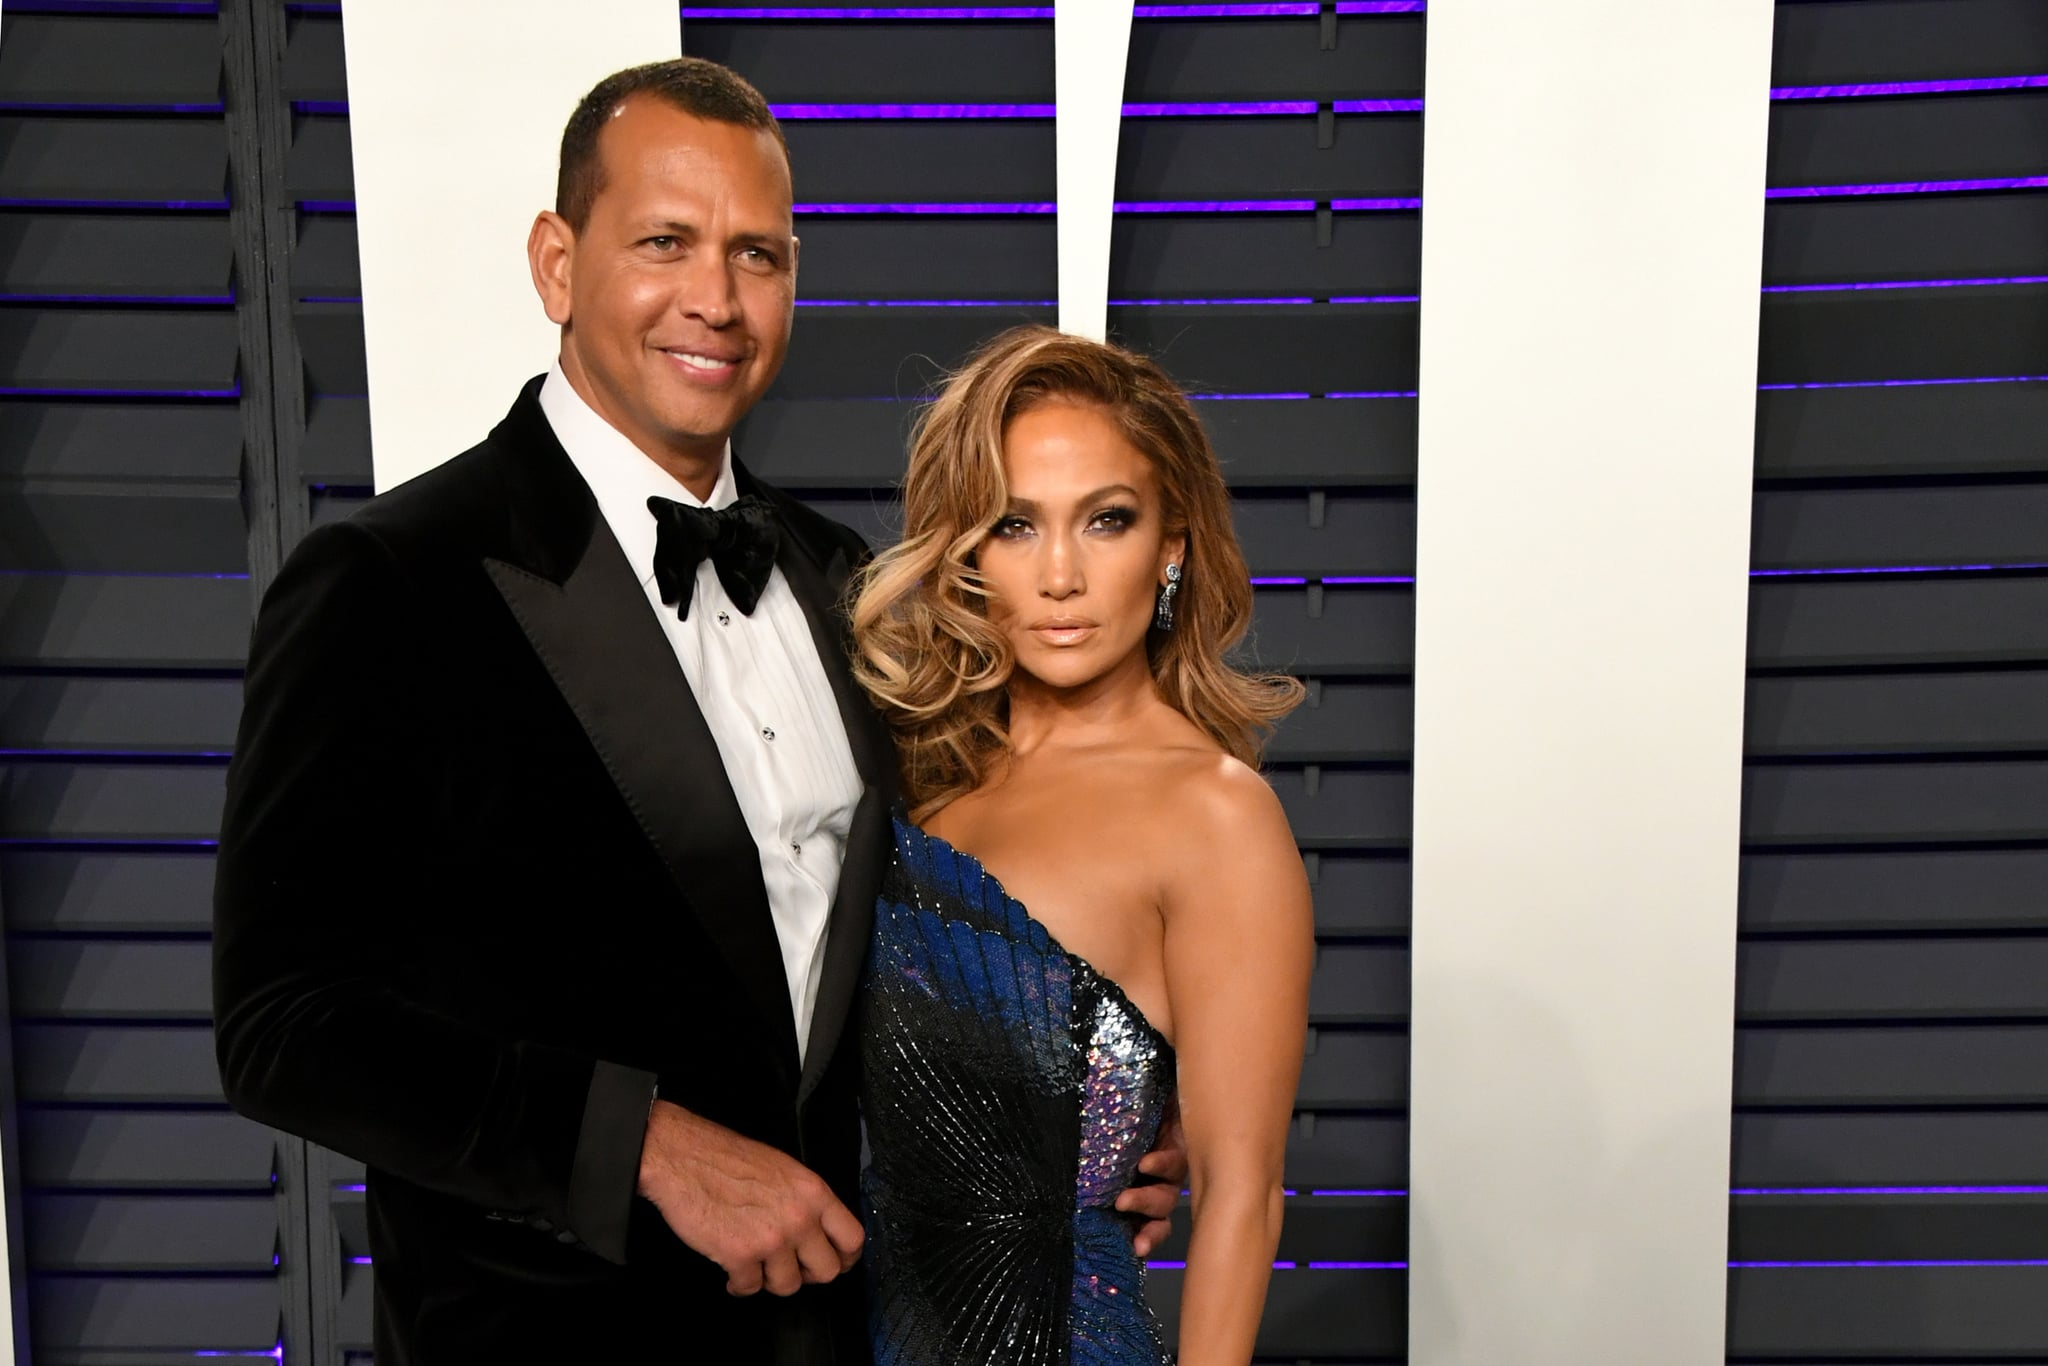 BEVERLY HILLS, CA - FEBRUARY 24:  (L-R) Alex Rodriguez and Jennifer Lopez attend the 2019 Vanity Fair Oscar Party hosted by Radhika Jones at Wallis Annenberg Centre for the Performing Arts on February 24, 2019 in Beverly Hills, California.  (Photo by Jon Kopaloff/WireImage)